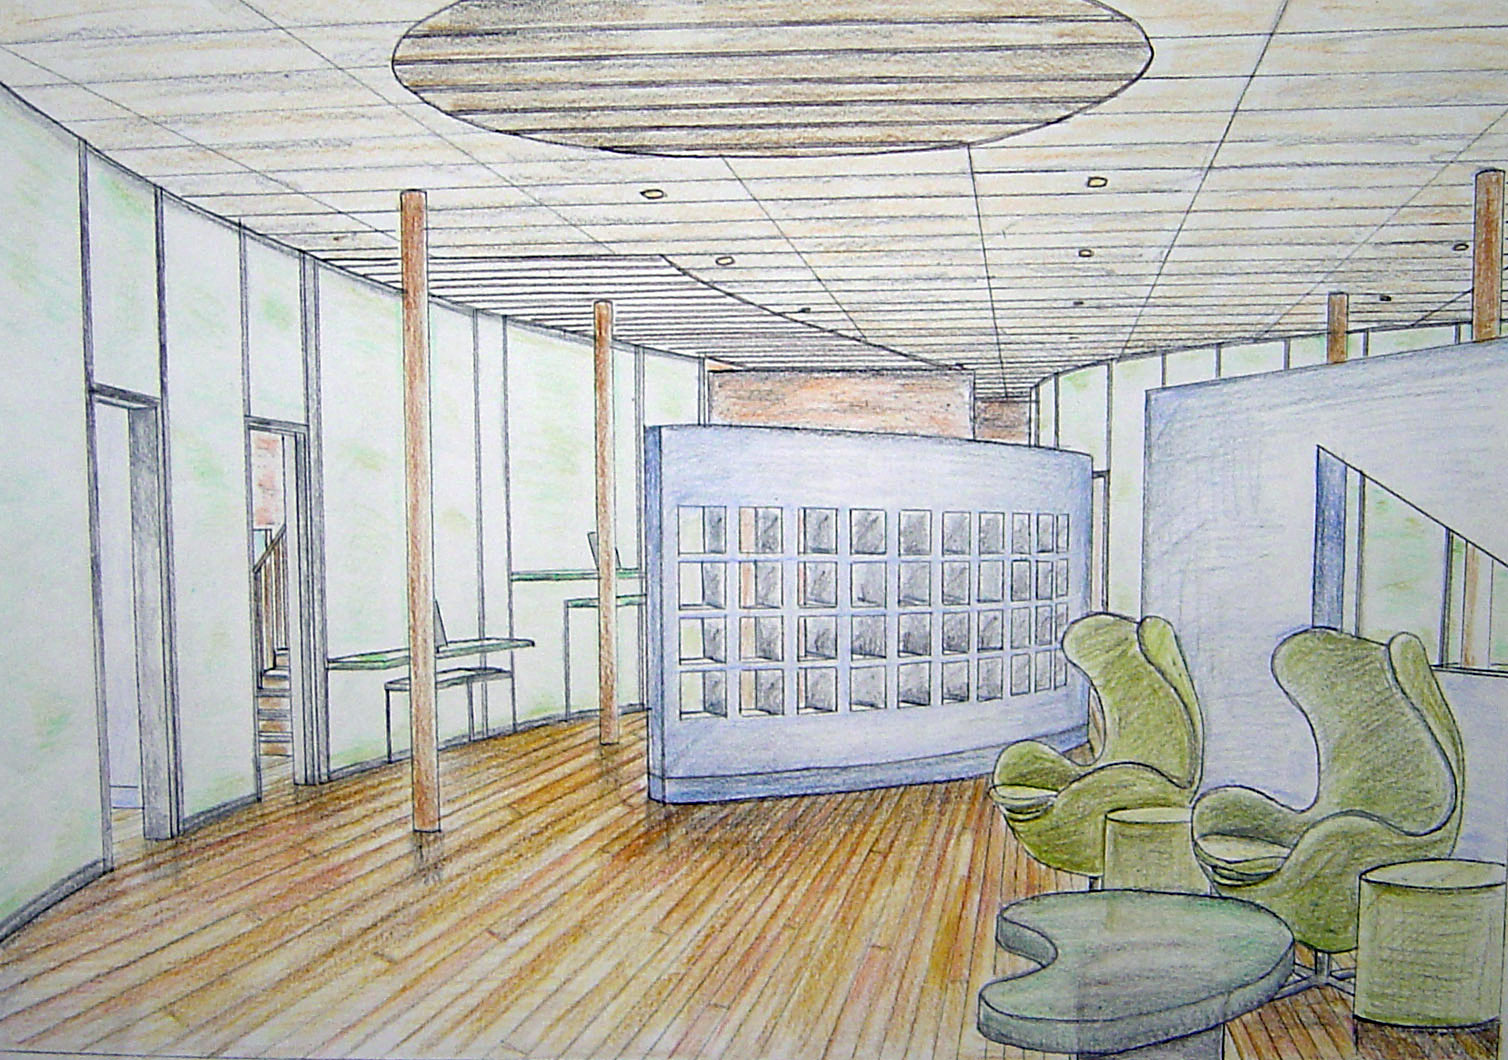 Interior Design Drawings Perspective. Newmark Building Perspective Drawing  Interior Design Drawings C